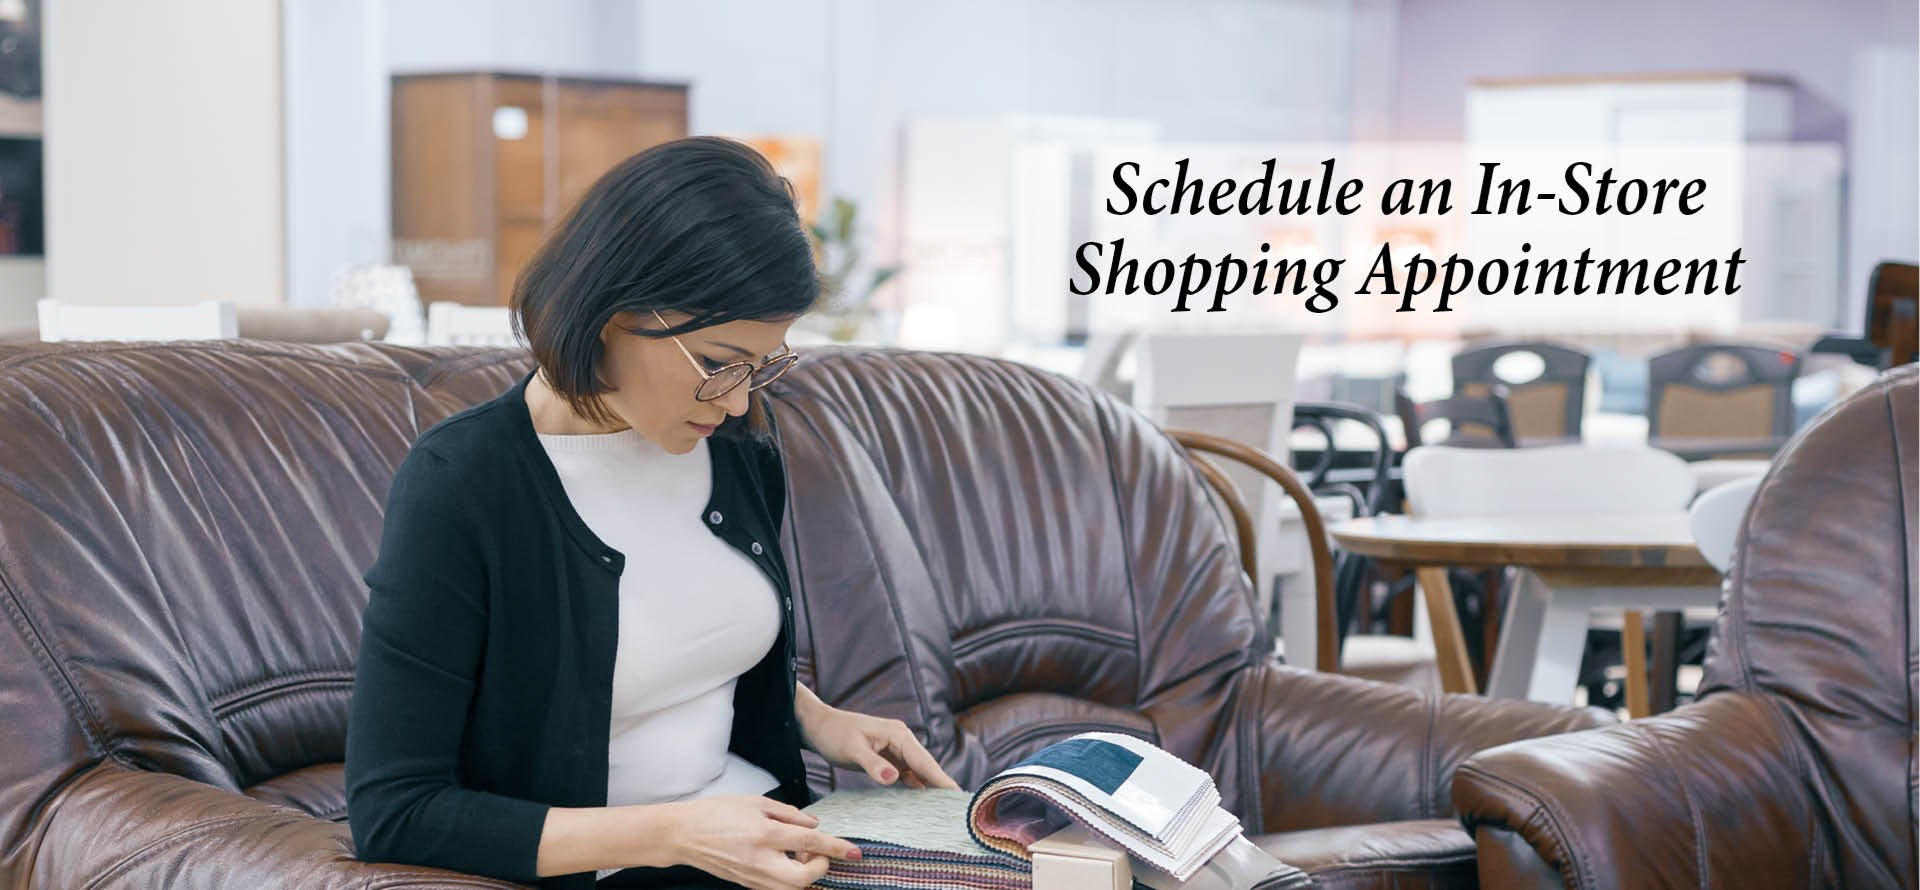 Schedule an In-Store Appoinment